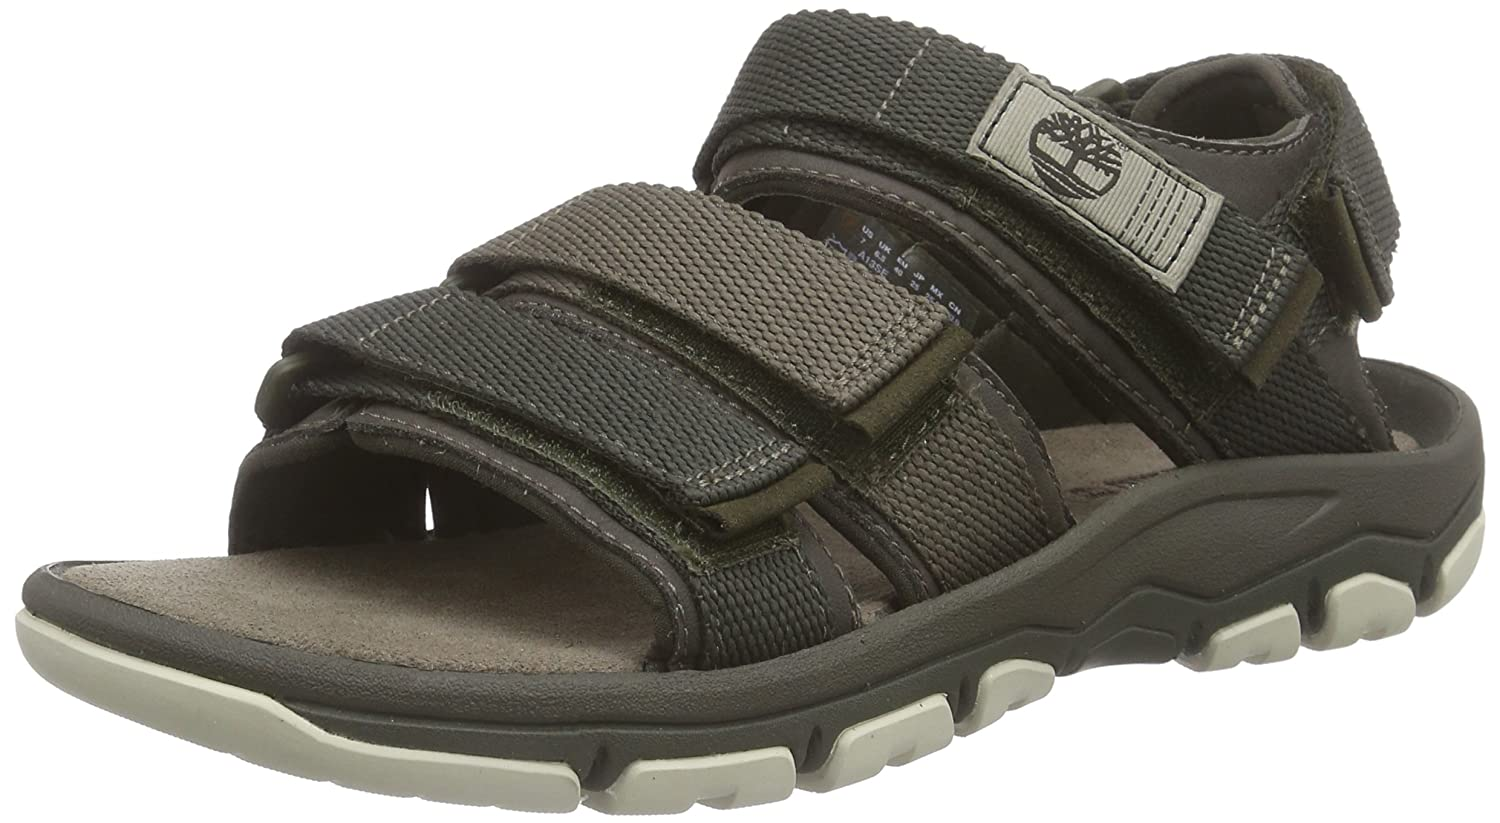 Timberland Roslindale Backstrap, Sandales Bout ouvert homme: : Chaussures et Sacs